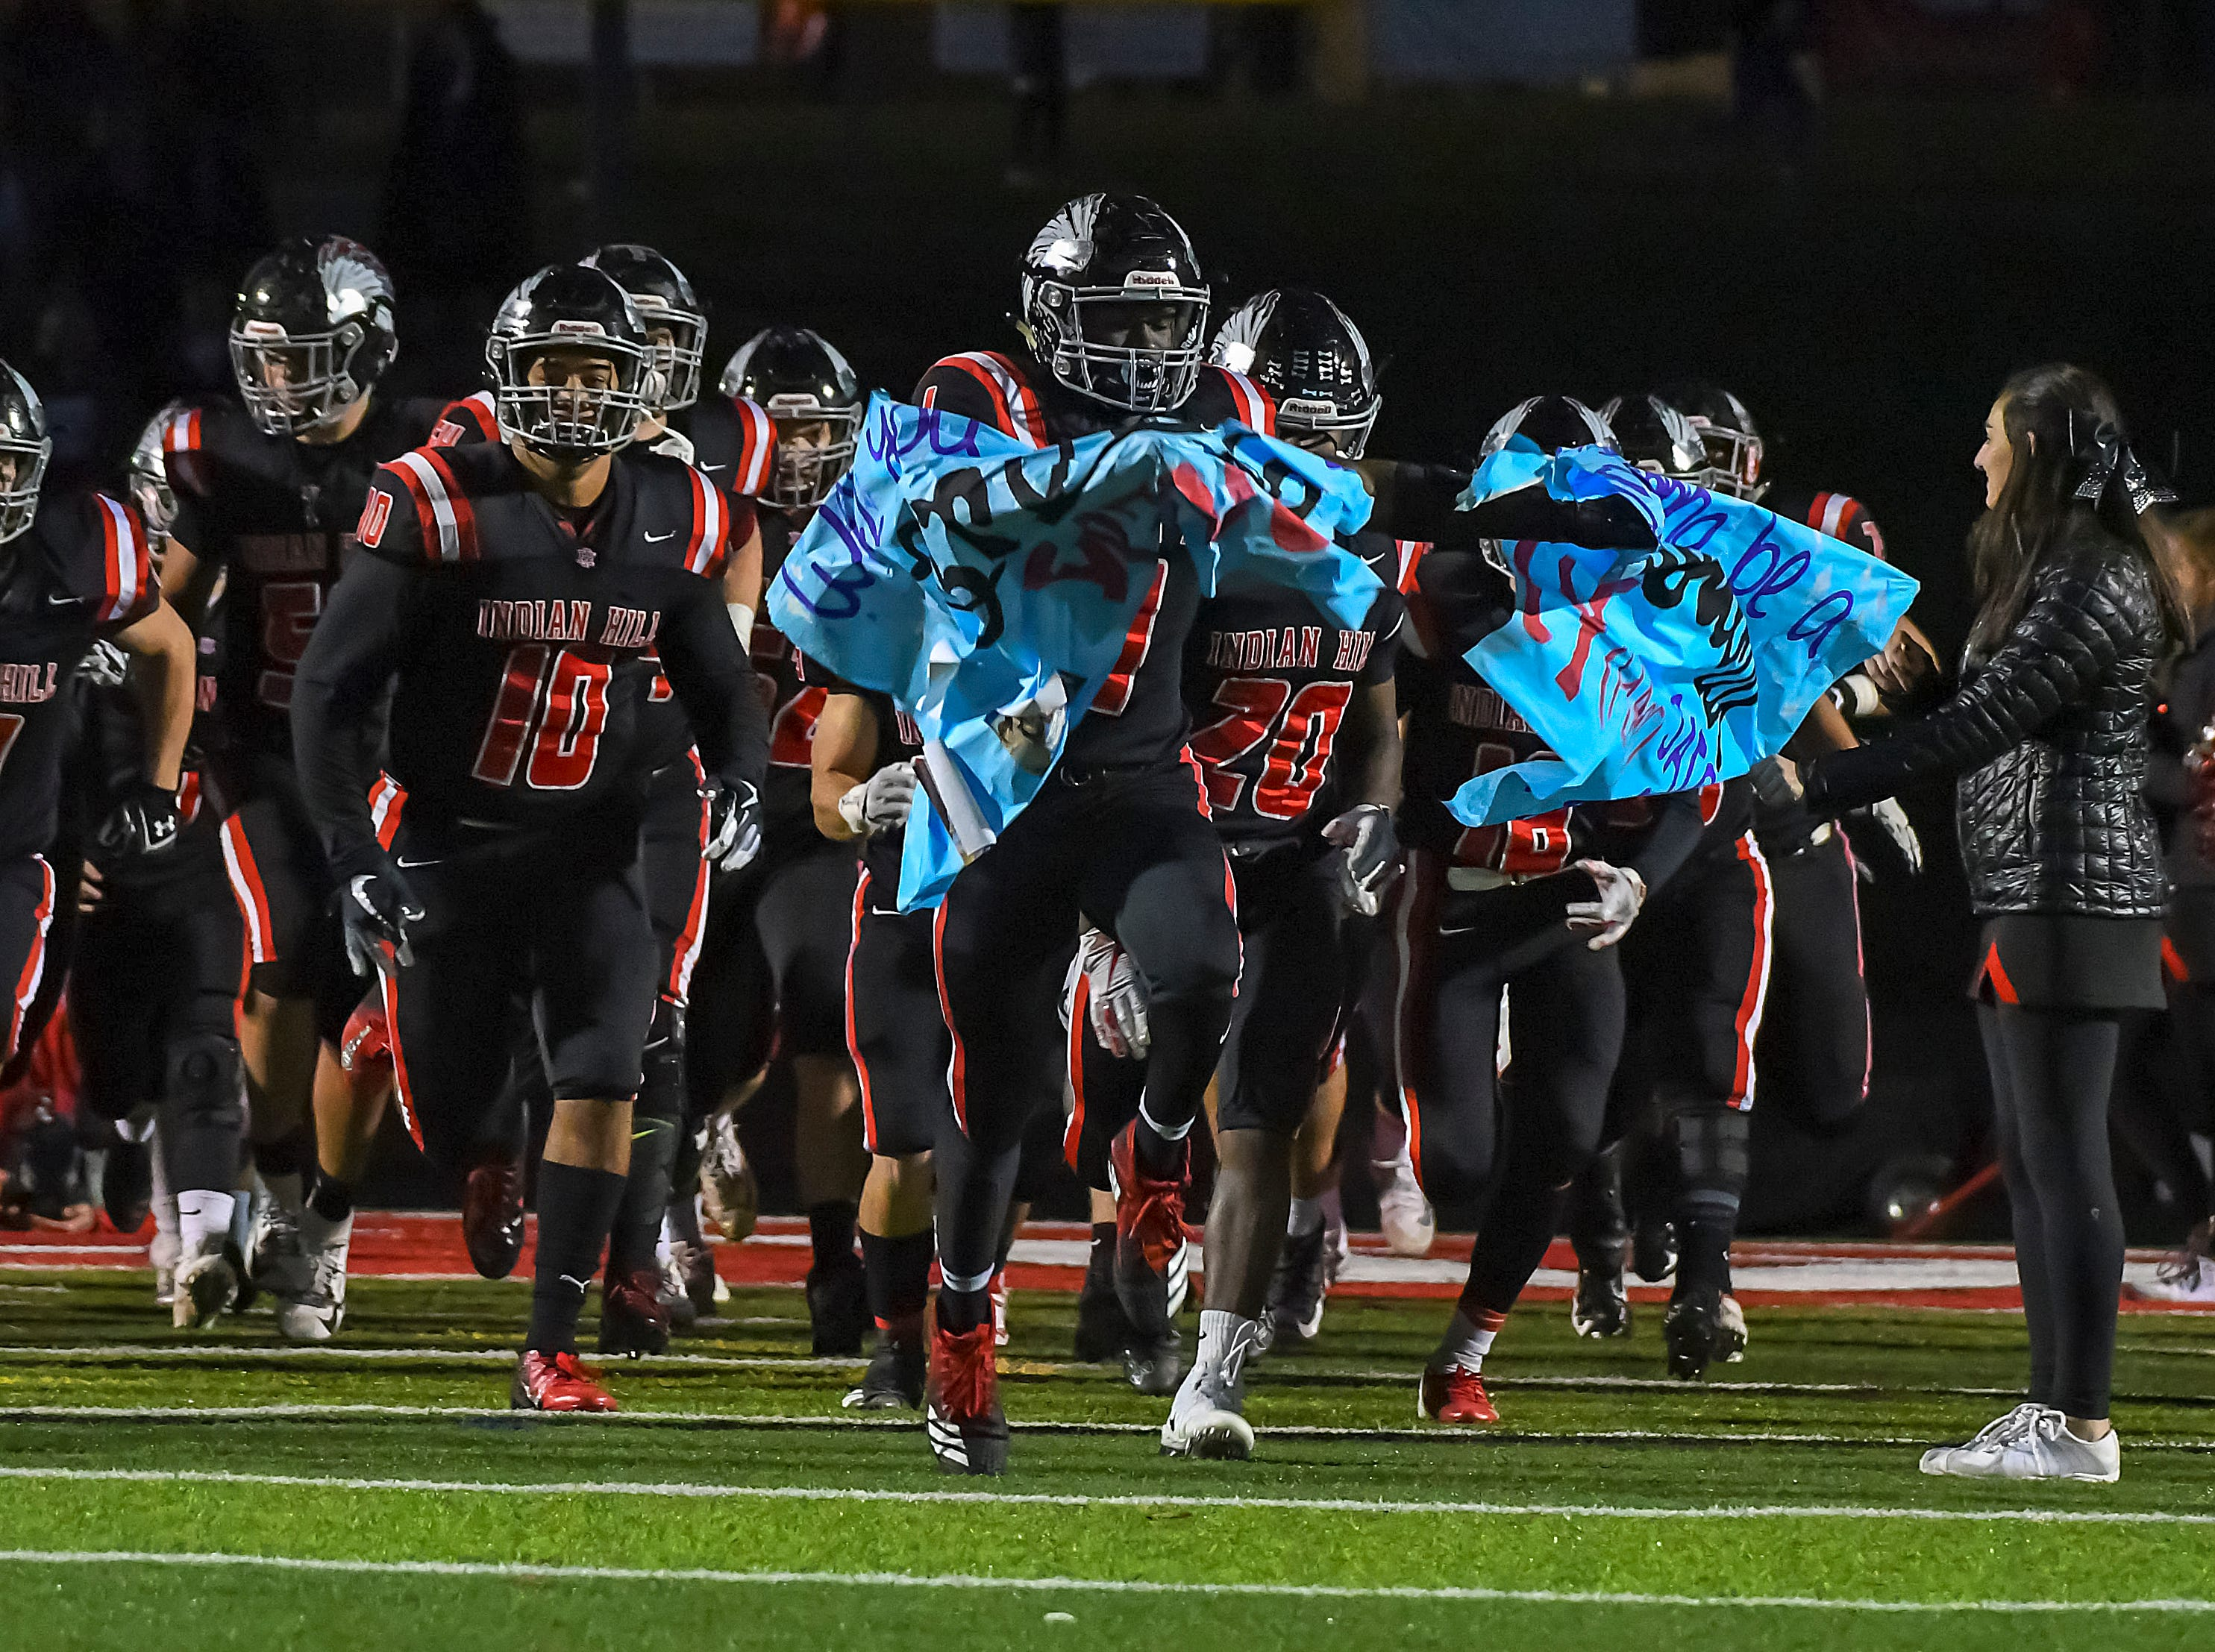 Indian Hill runs onto the field for their game against Waverly in the OHSAA D4 Region 16 Playoffs at Indian Hill High School, Saturday, Nov. 3, 2018